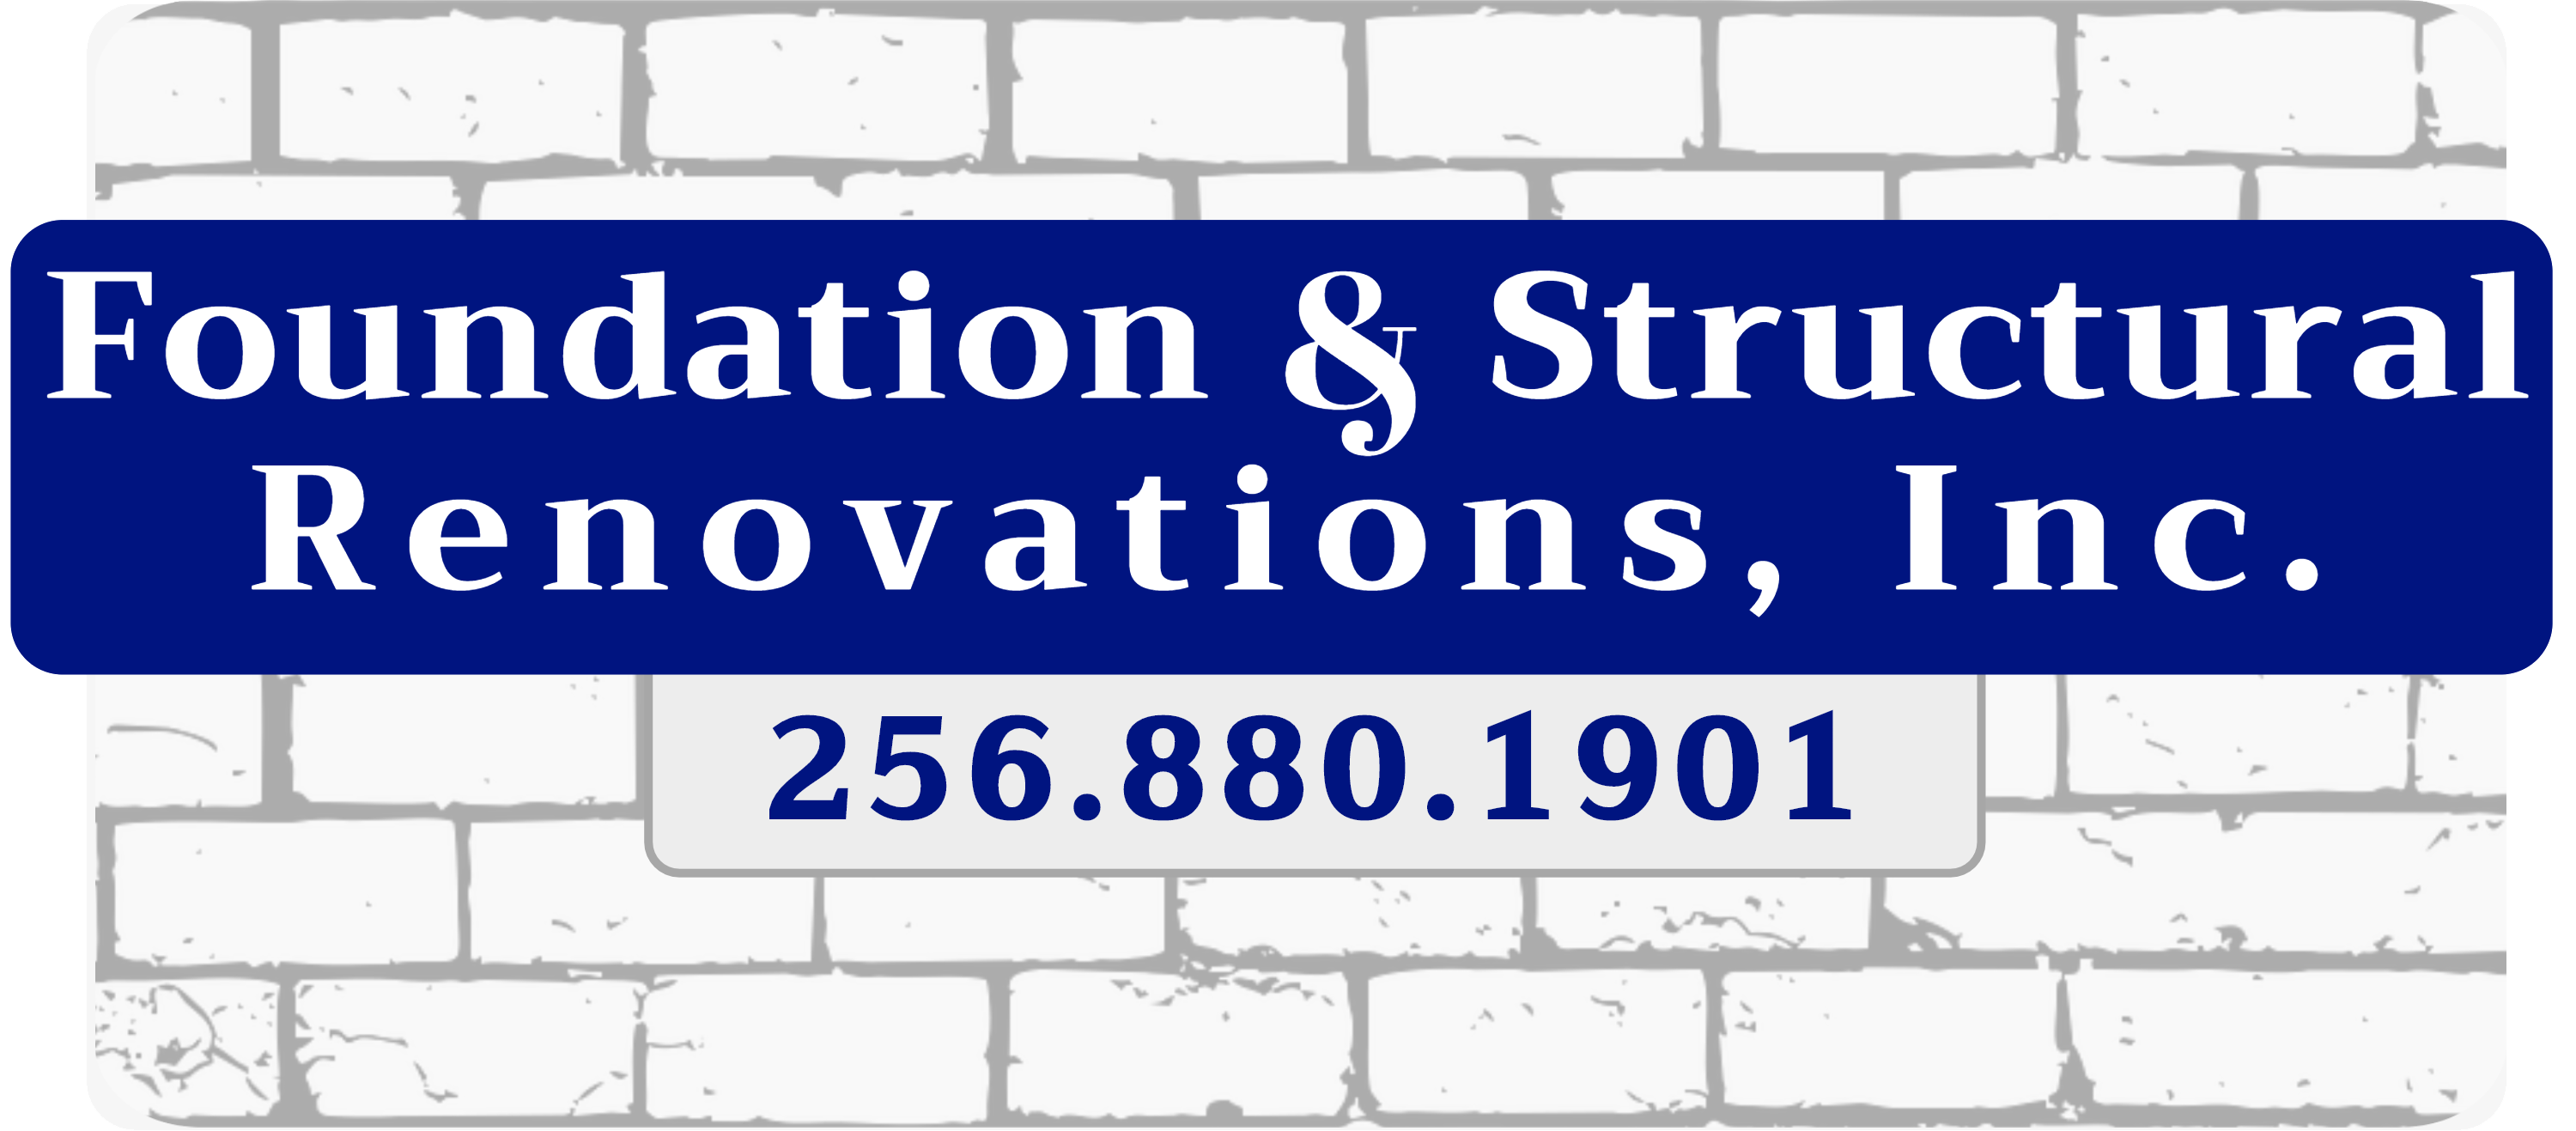 Foundation & Structural Renovations